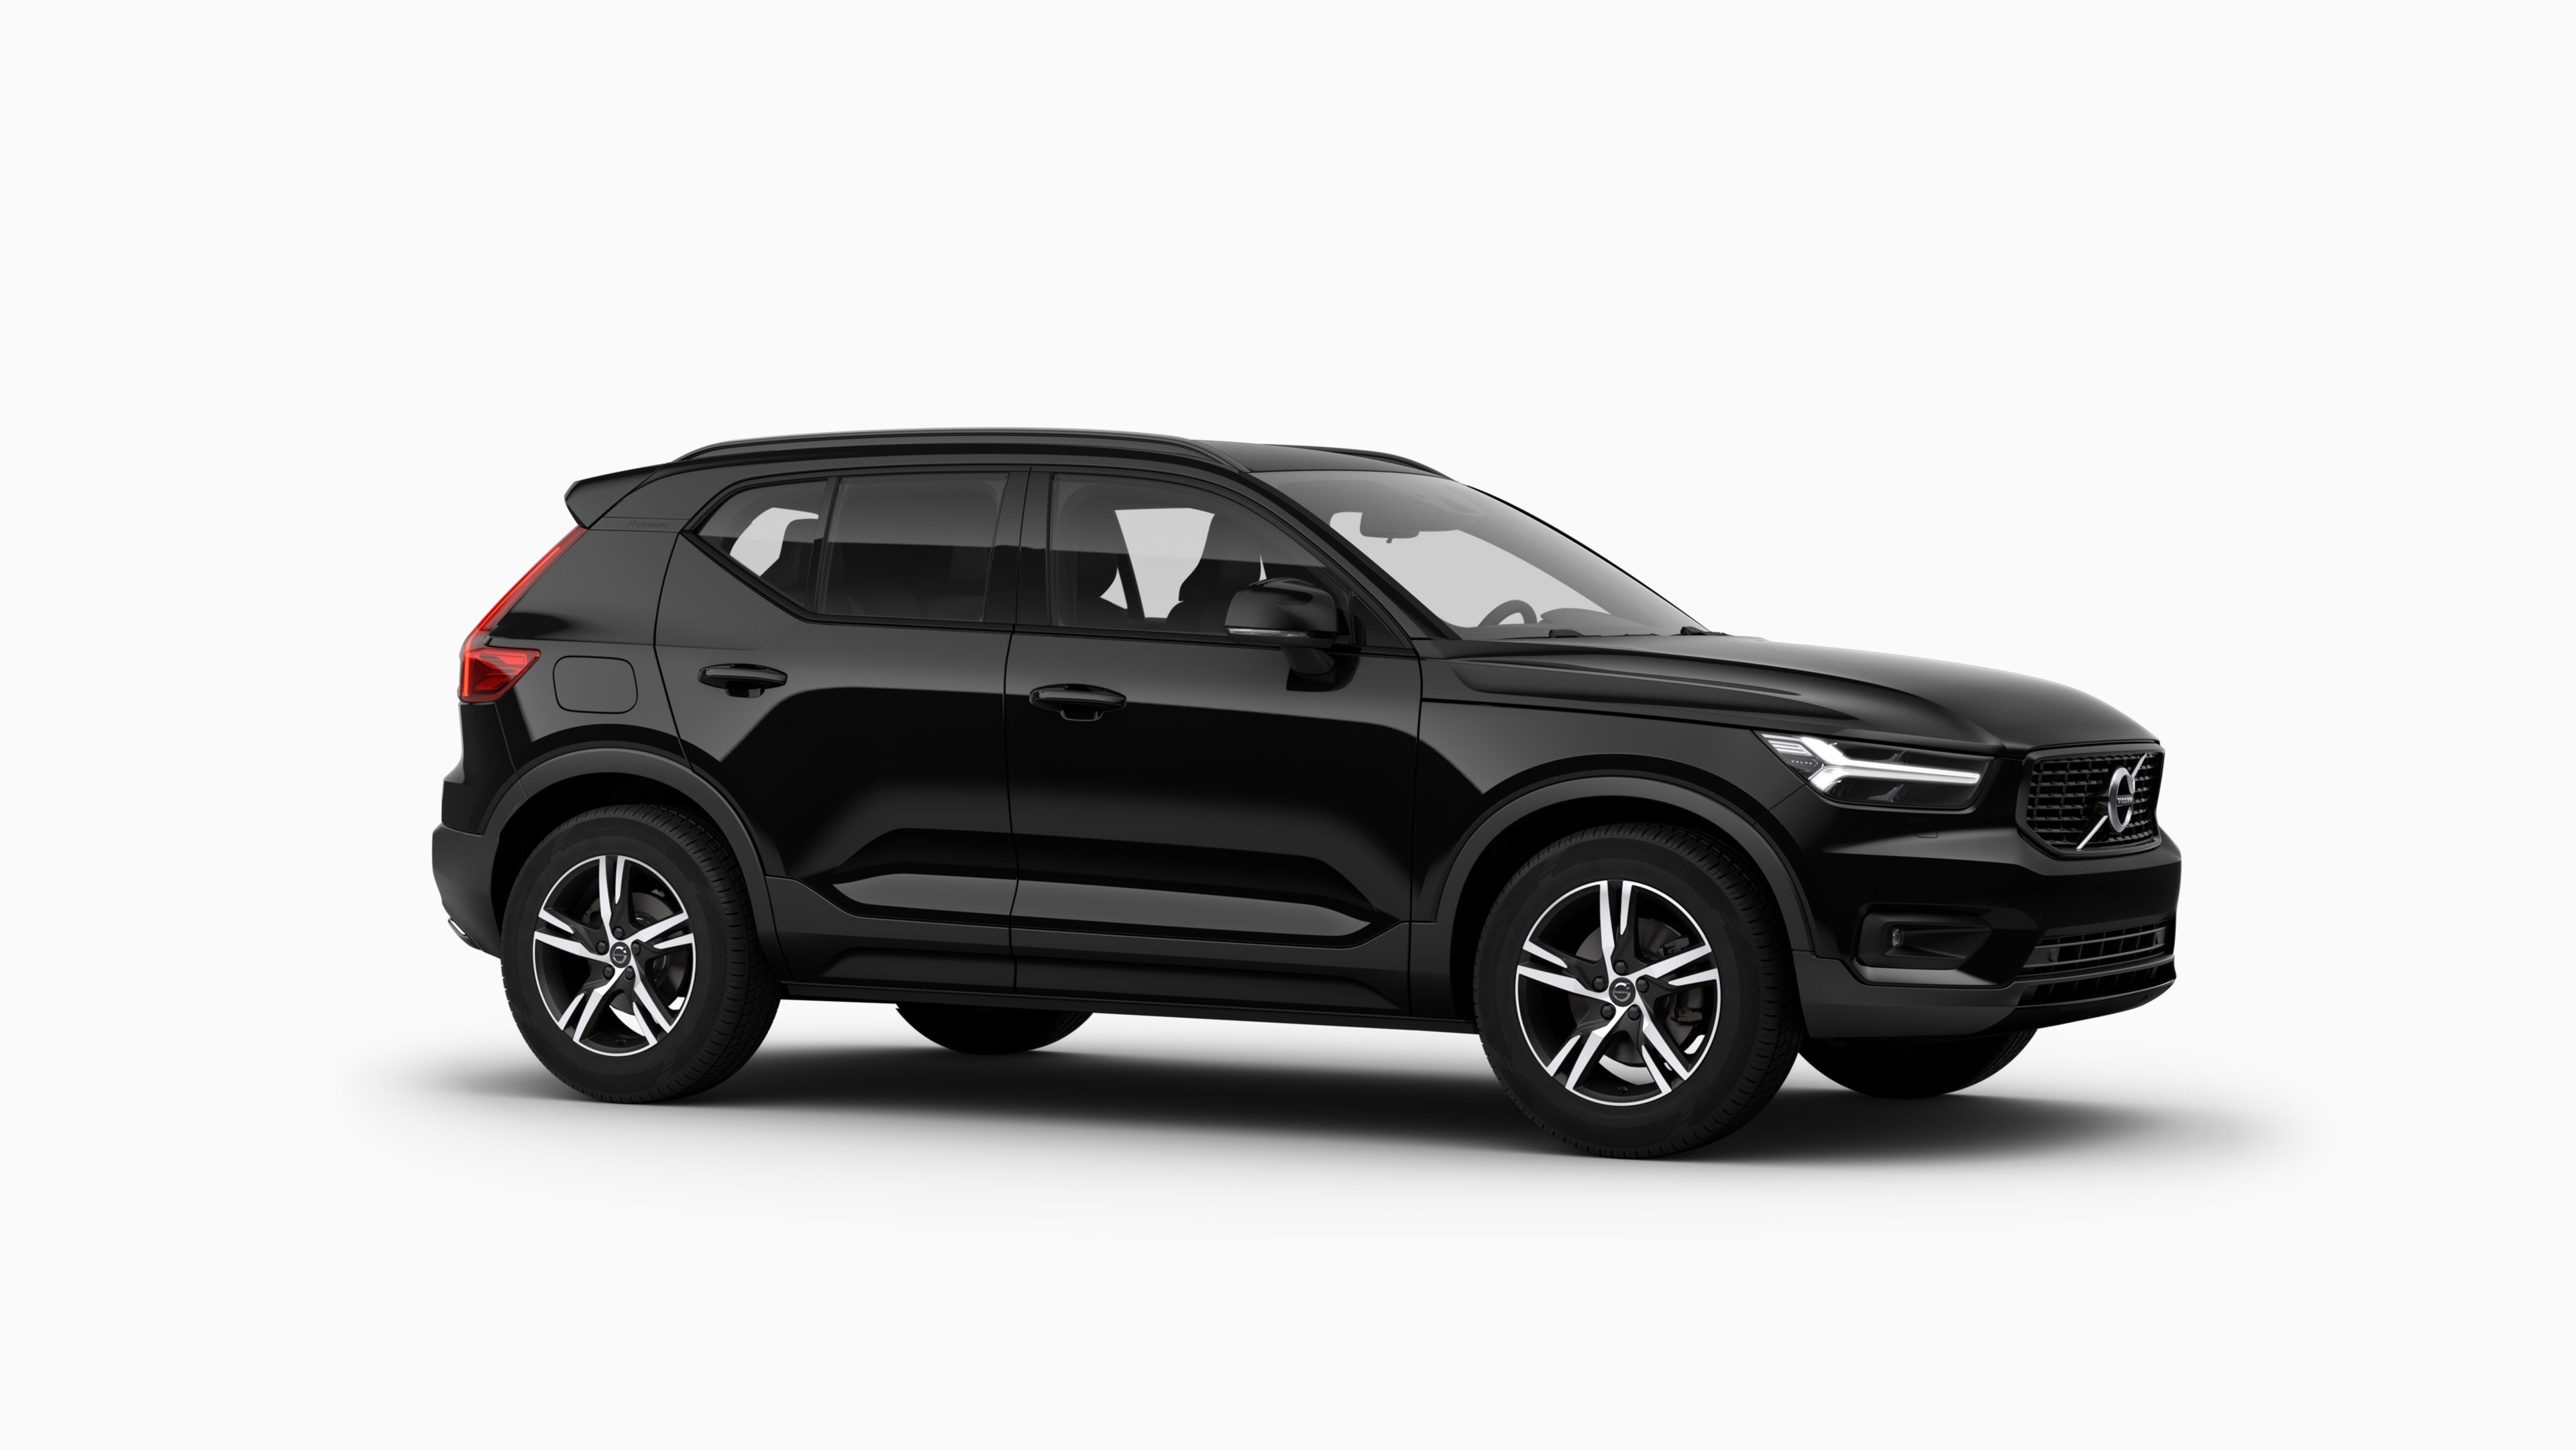 volvo xc40 r design cars automatikgetriebe und getriebe. Black Bedroom Furniture Sets. Home Design Ideas